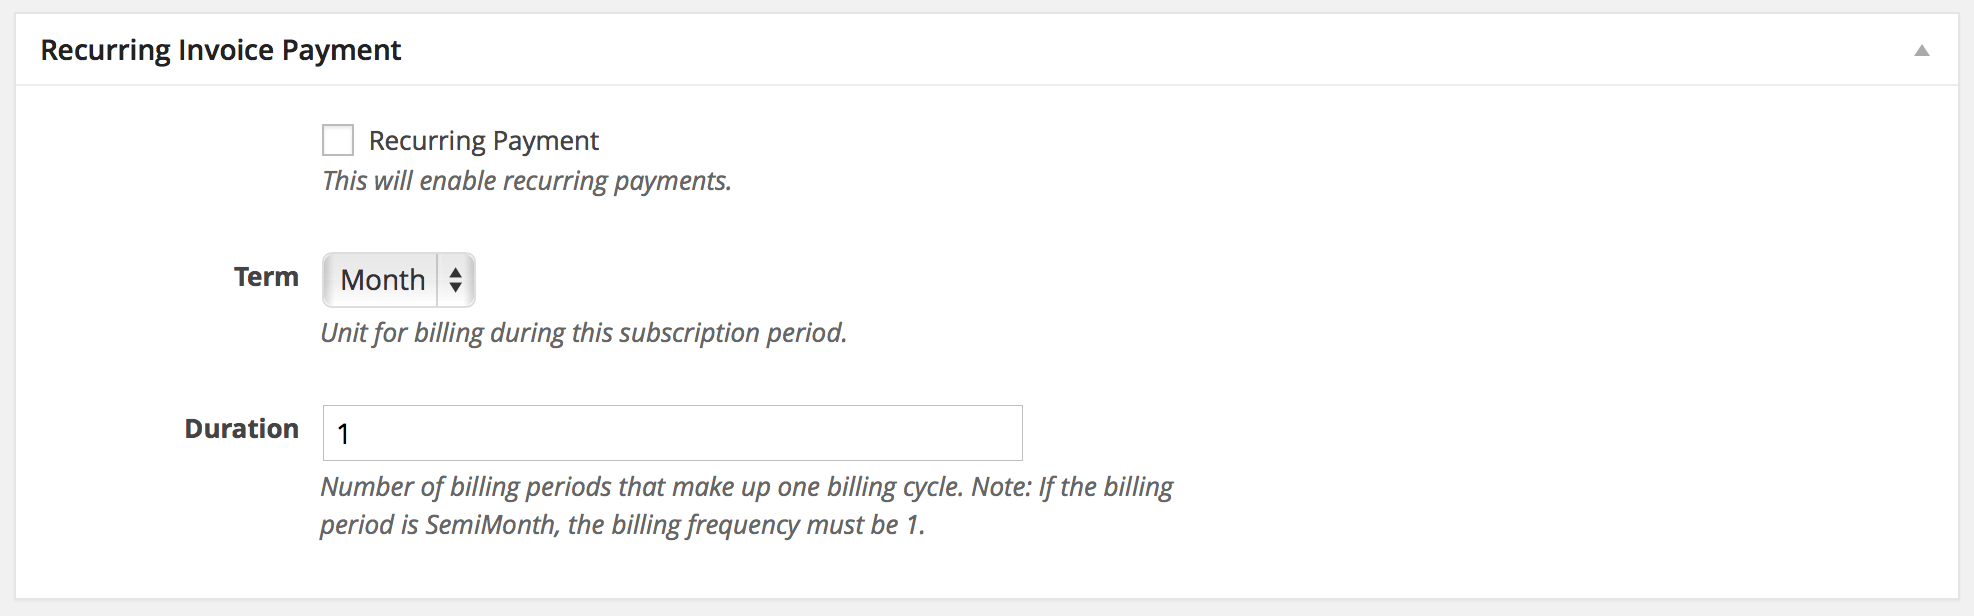 Recurring Subscription Payment Options  Payment Invoices